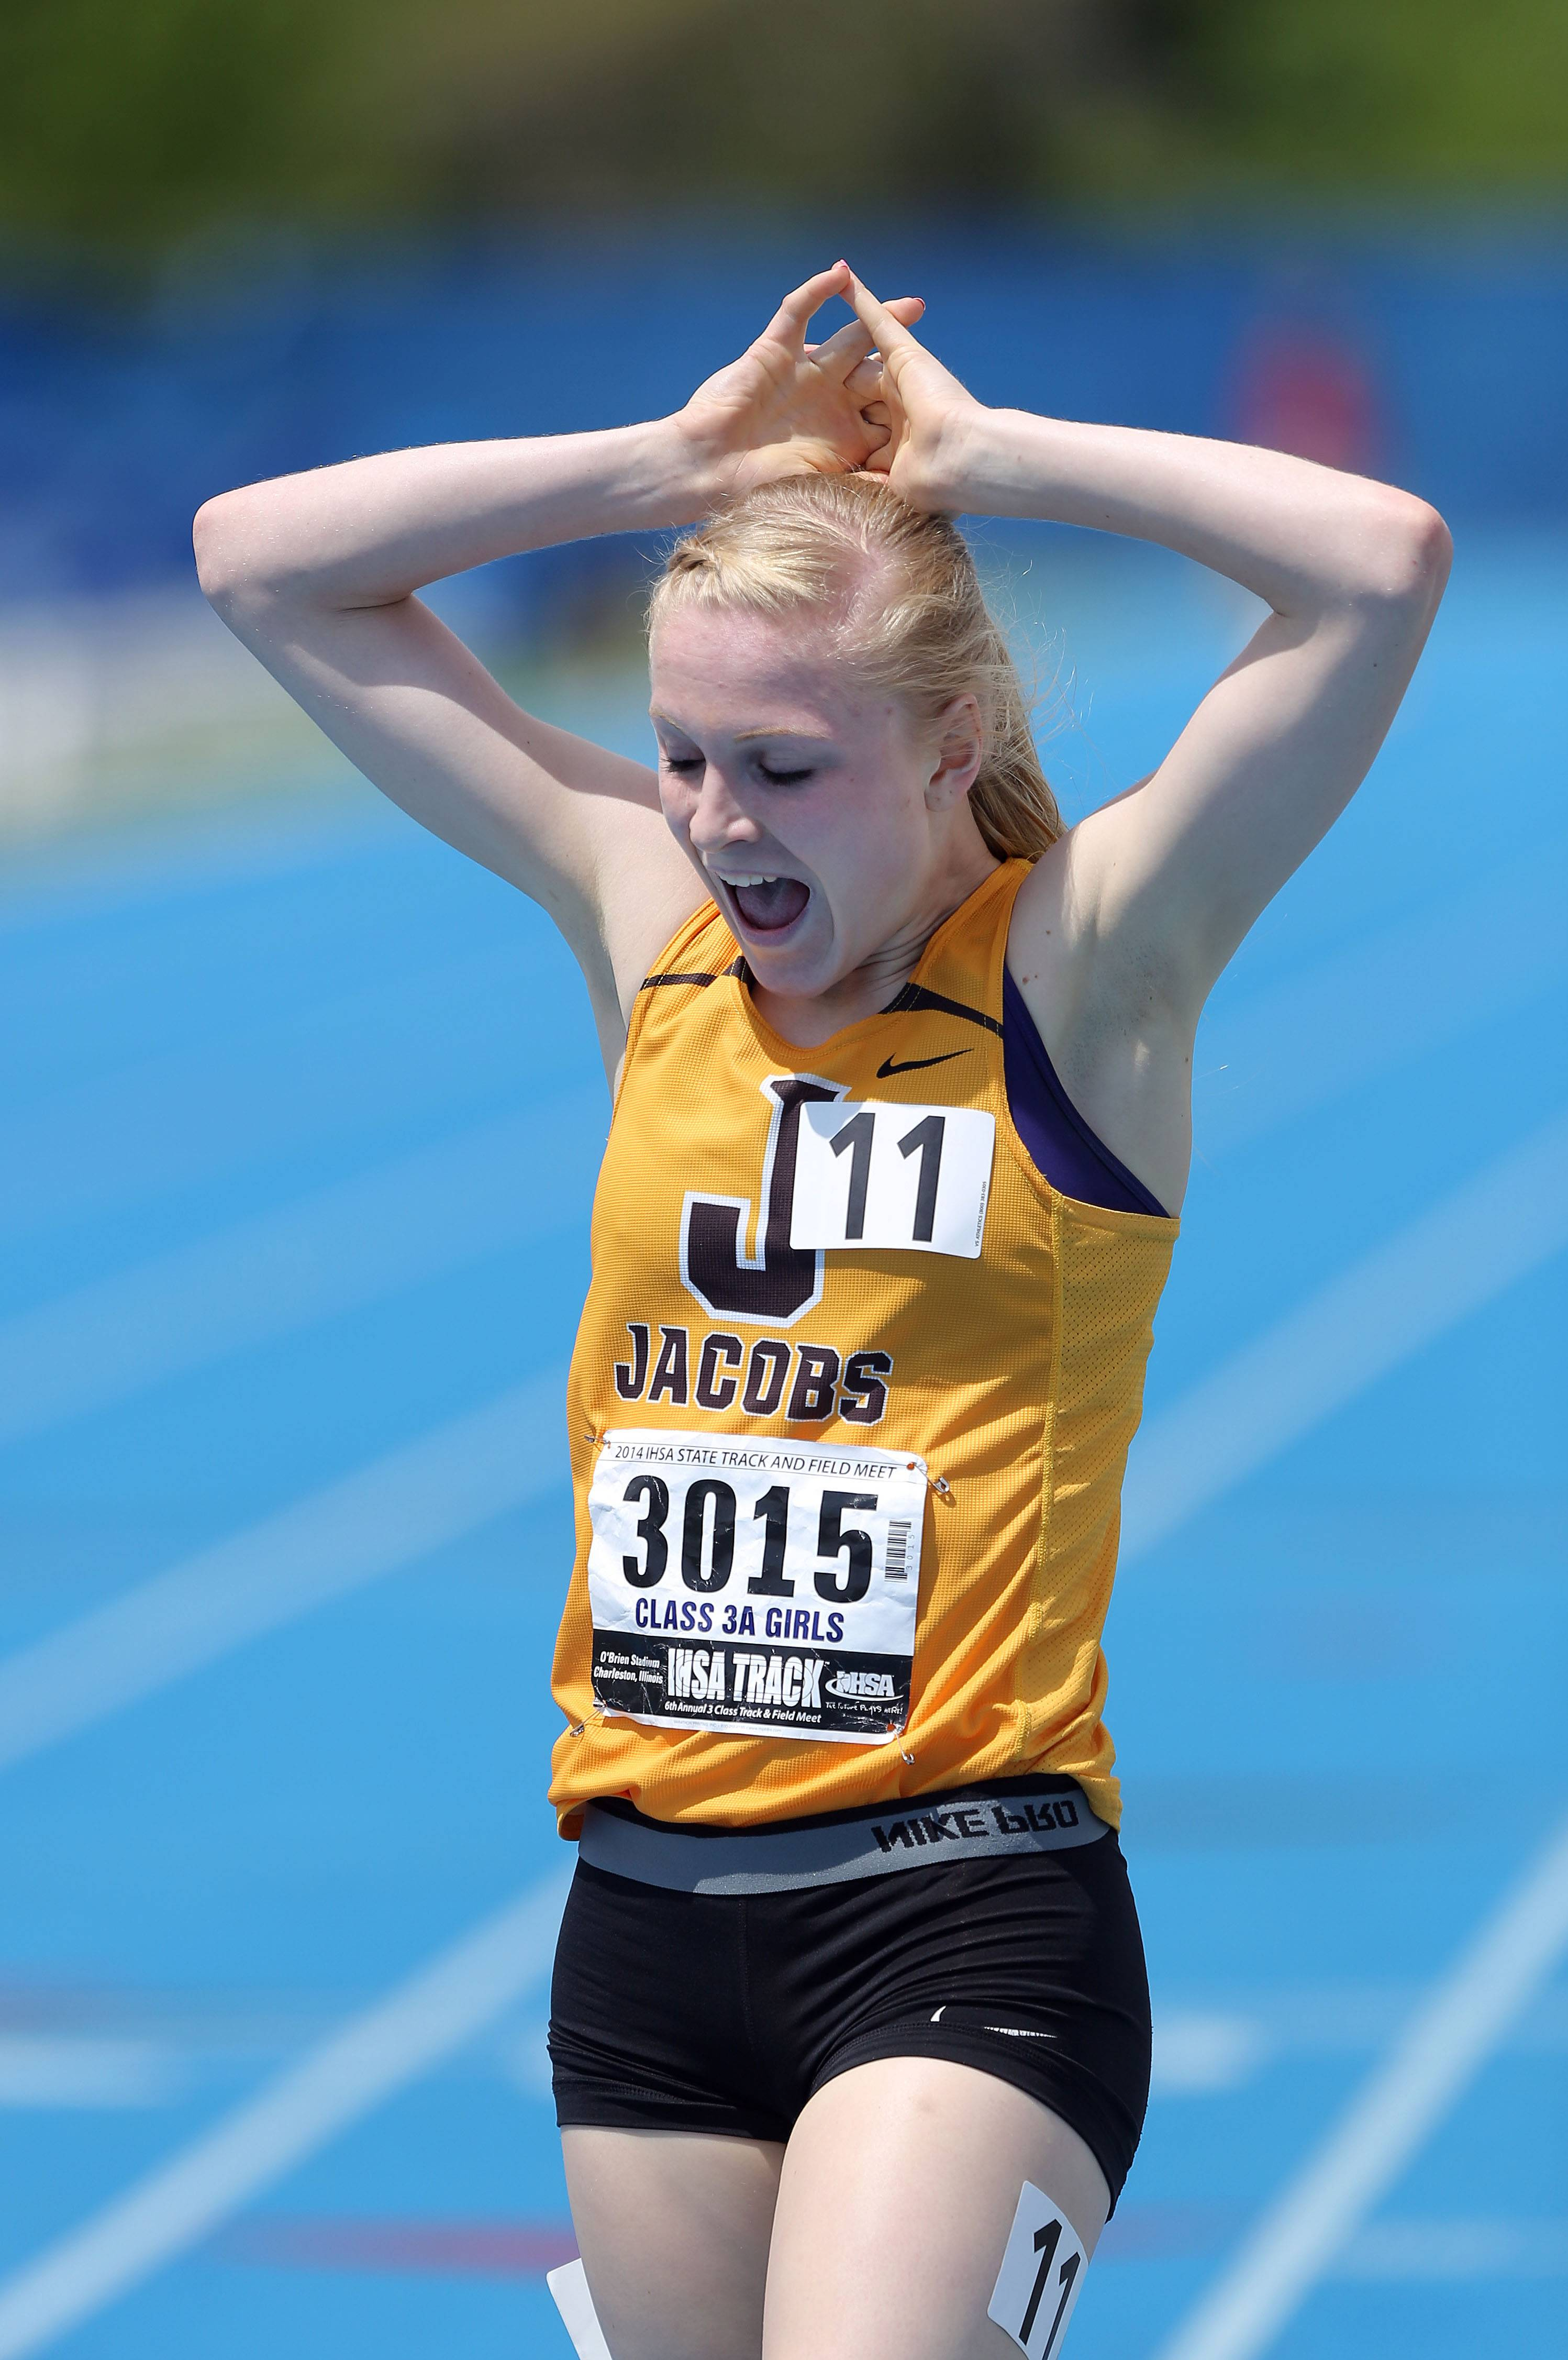 Jacobs Lauren Van Vlierbergen reacts after winning the Class 3A 800-meter run during girls track and field state finals at Eastern Illinois University in Charleston.